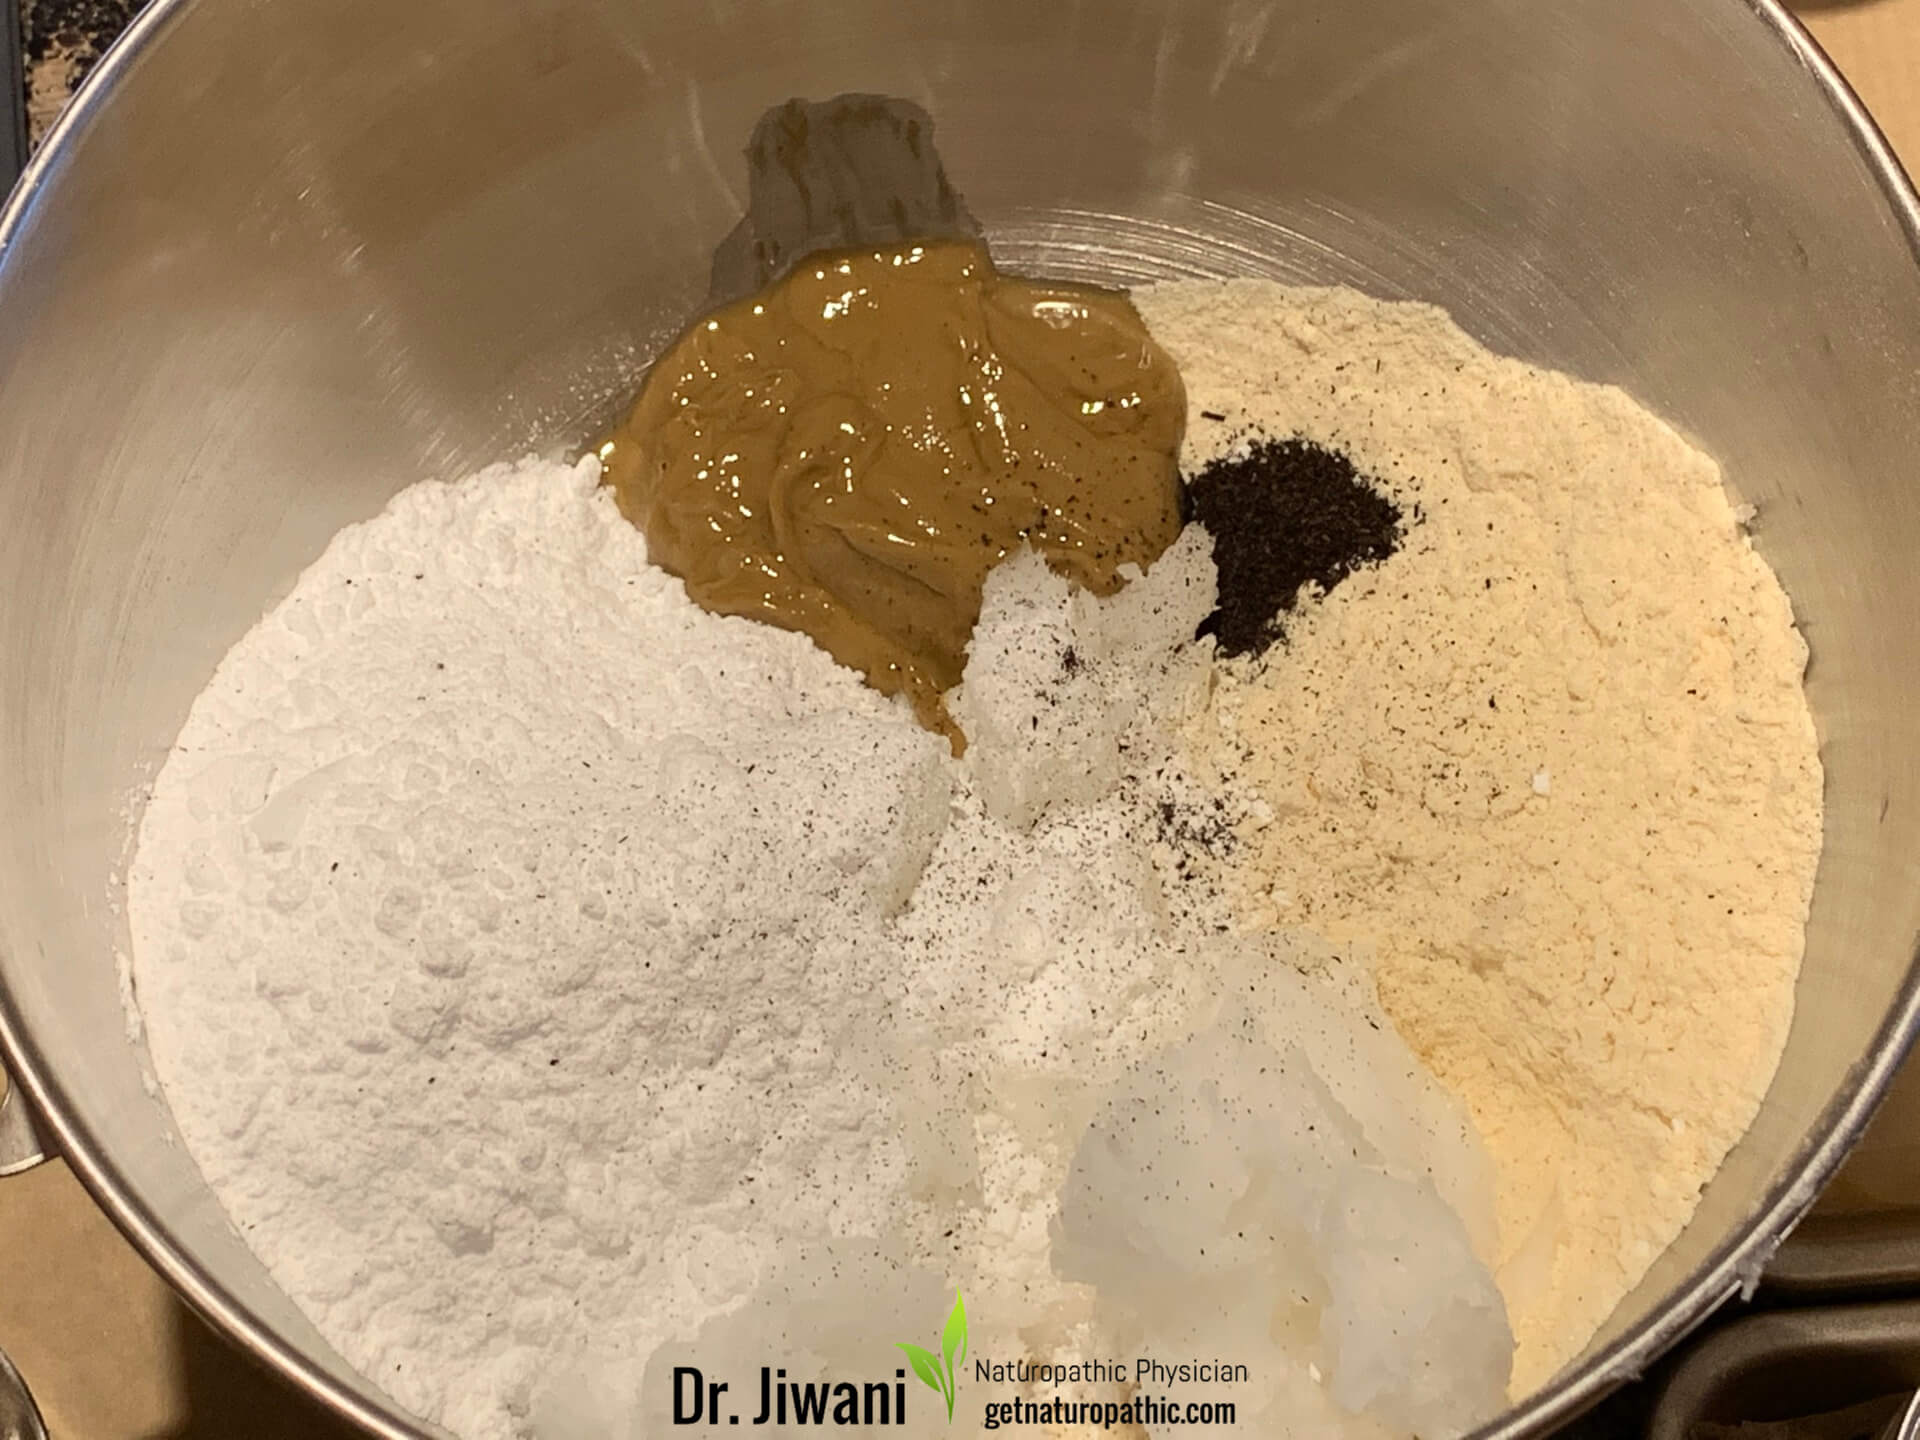 Recipe: Dr. Jiwani's Keto Vegan Shortbread Cookies 9 | Dr. Jiwani's Naturopathic Nuggets Blog